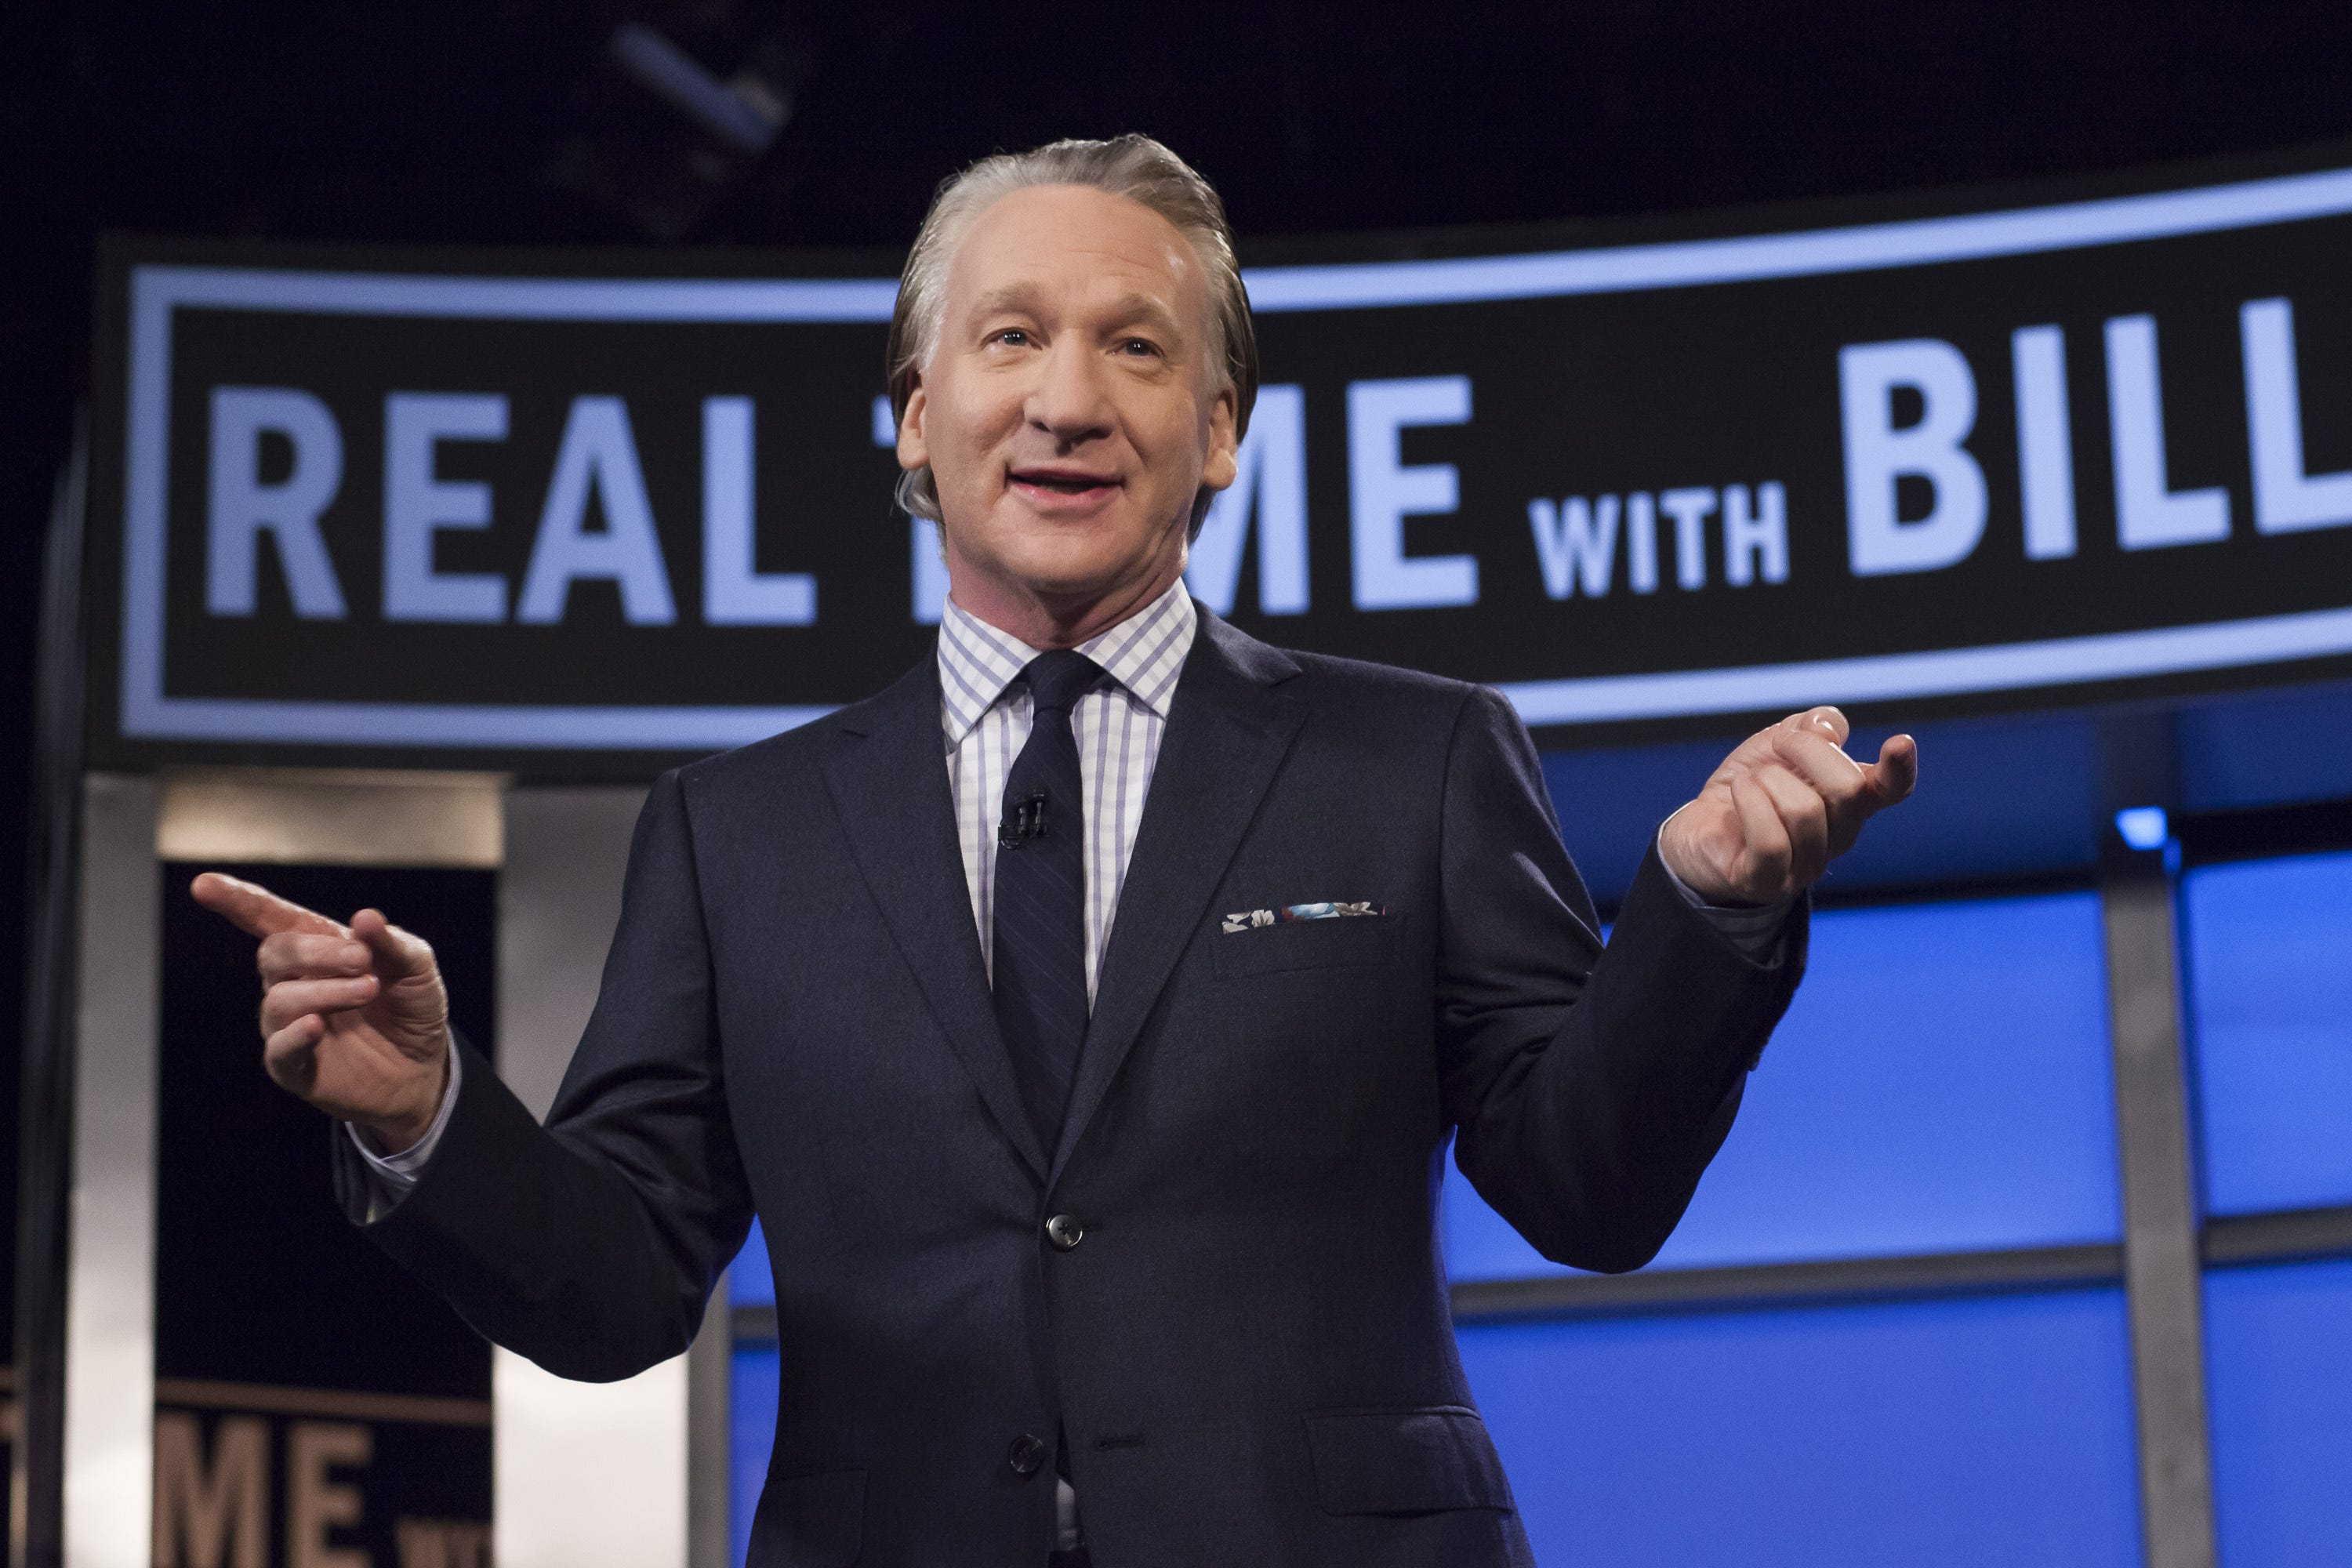 Bill Maher: Trump is treating the government like one of his casinos